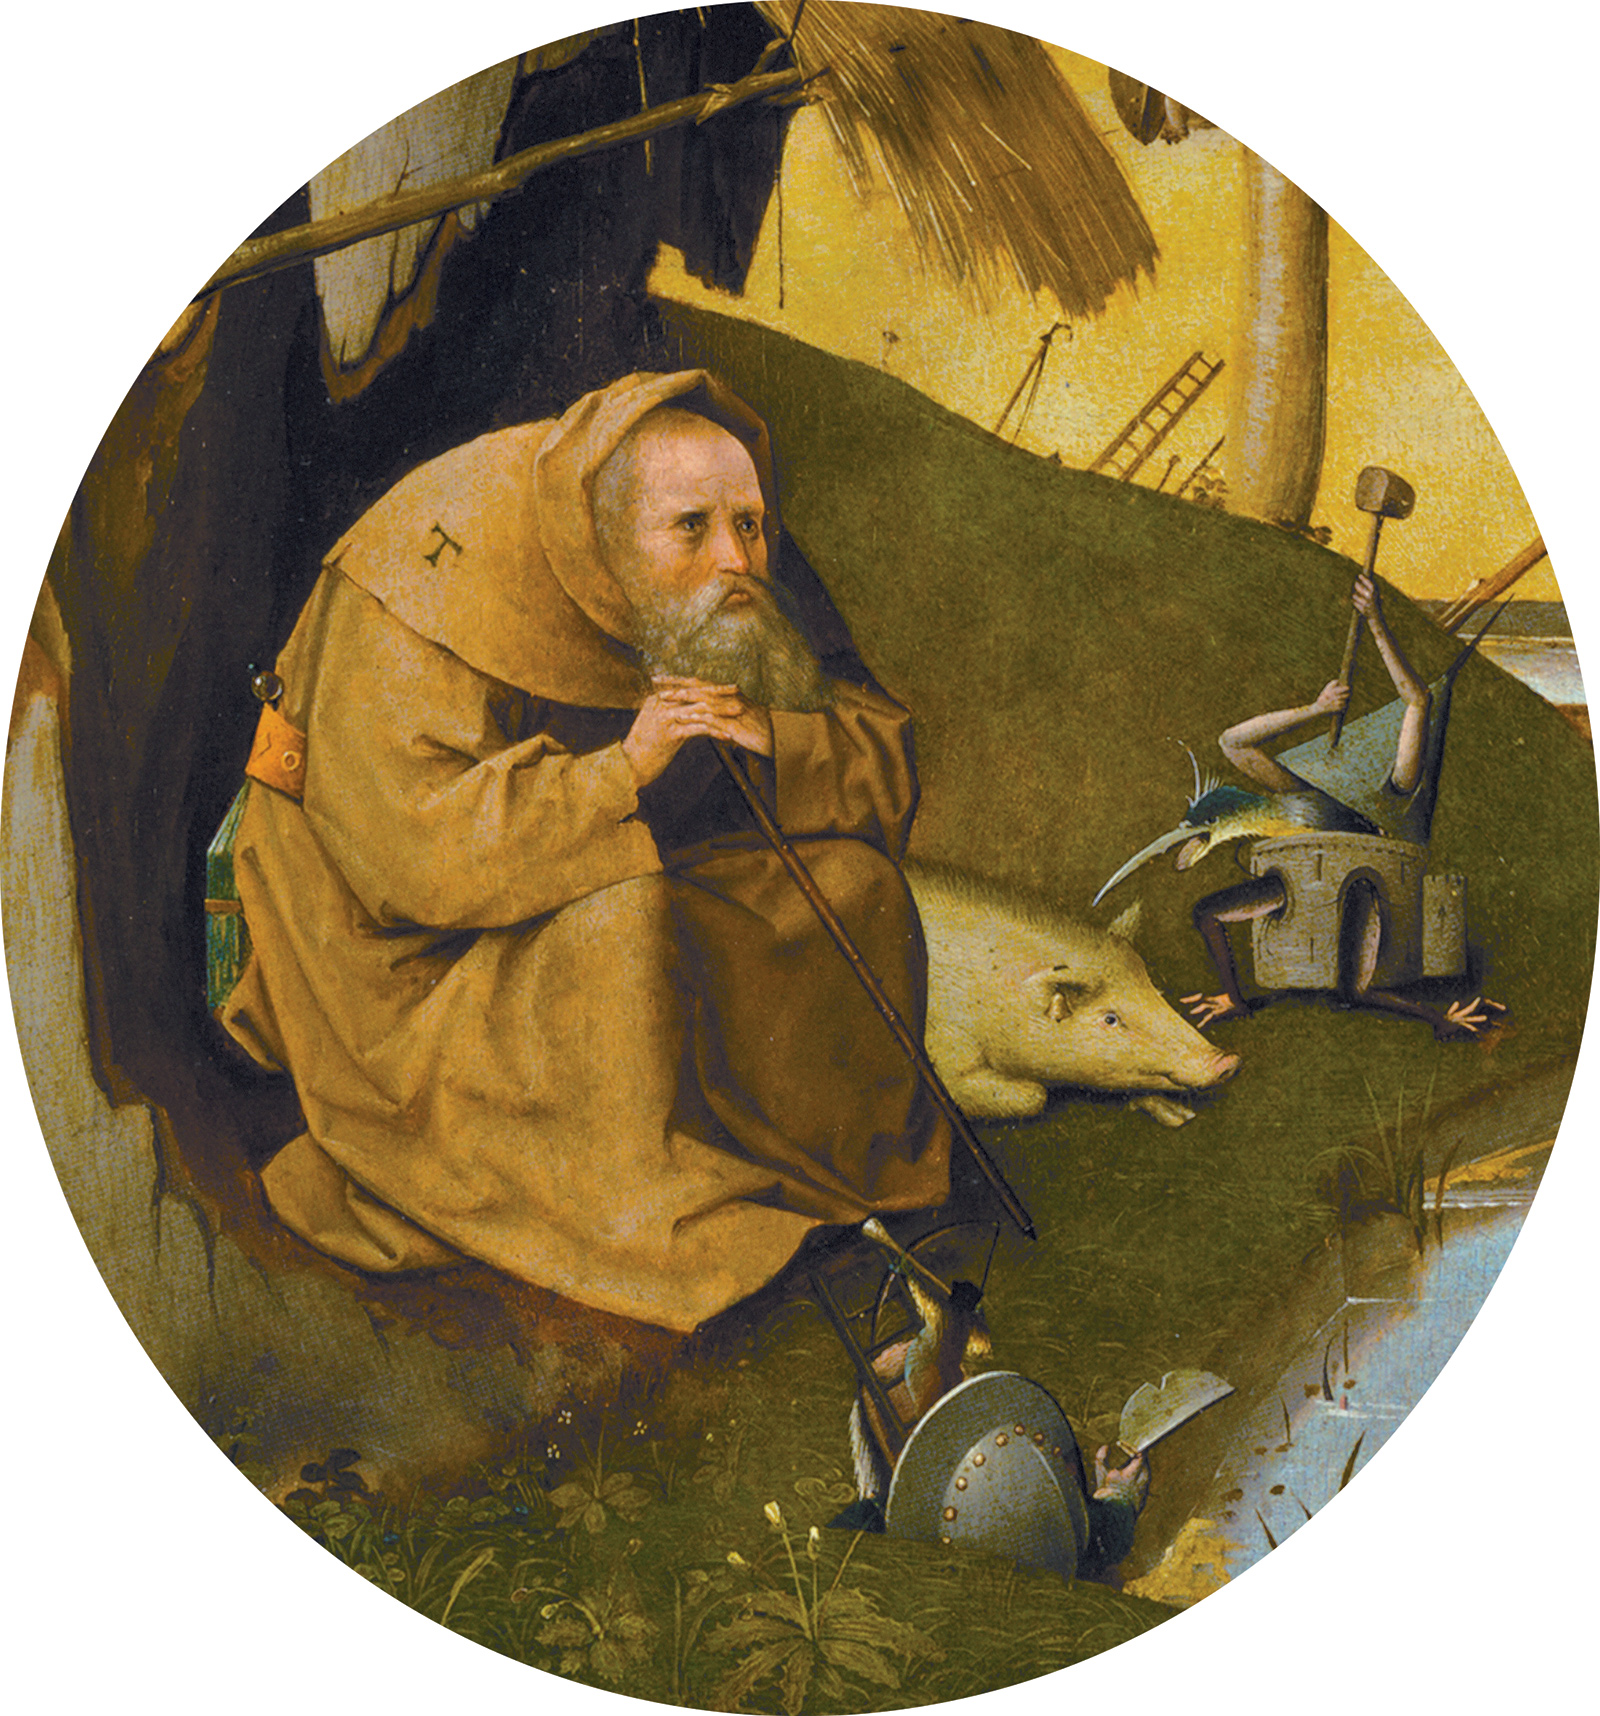 Detail of Hieronymus Bosch's The Temptations of Saint Anthony, circa 1510–1515; from 'Bosch: The Fifth Centenary Exhibition,' on view at the Museo Nacional del Prado, Madrid, until September 11, 2016.